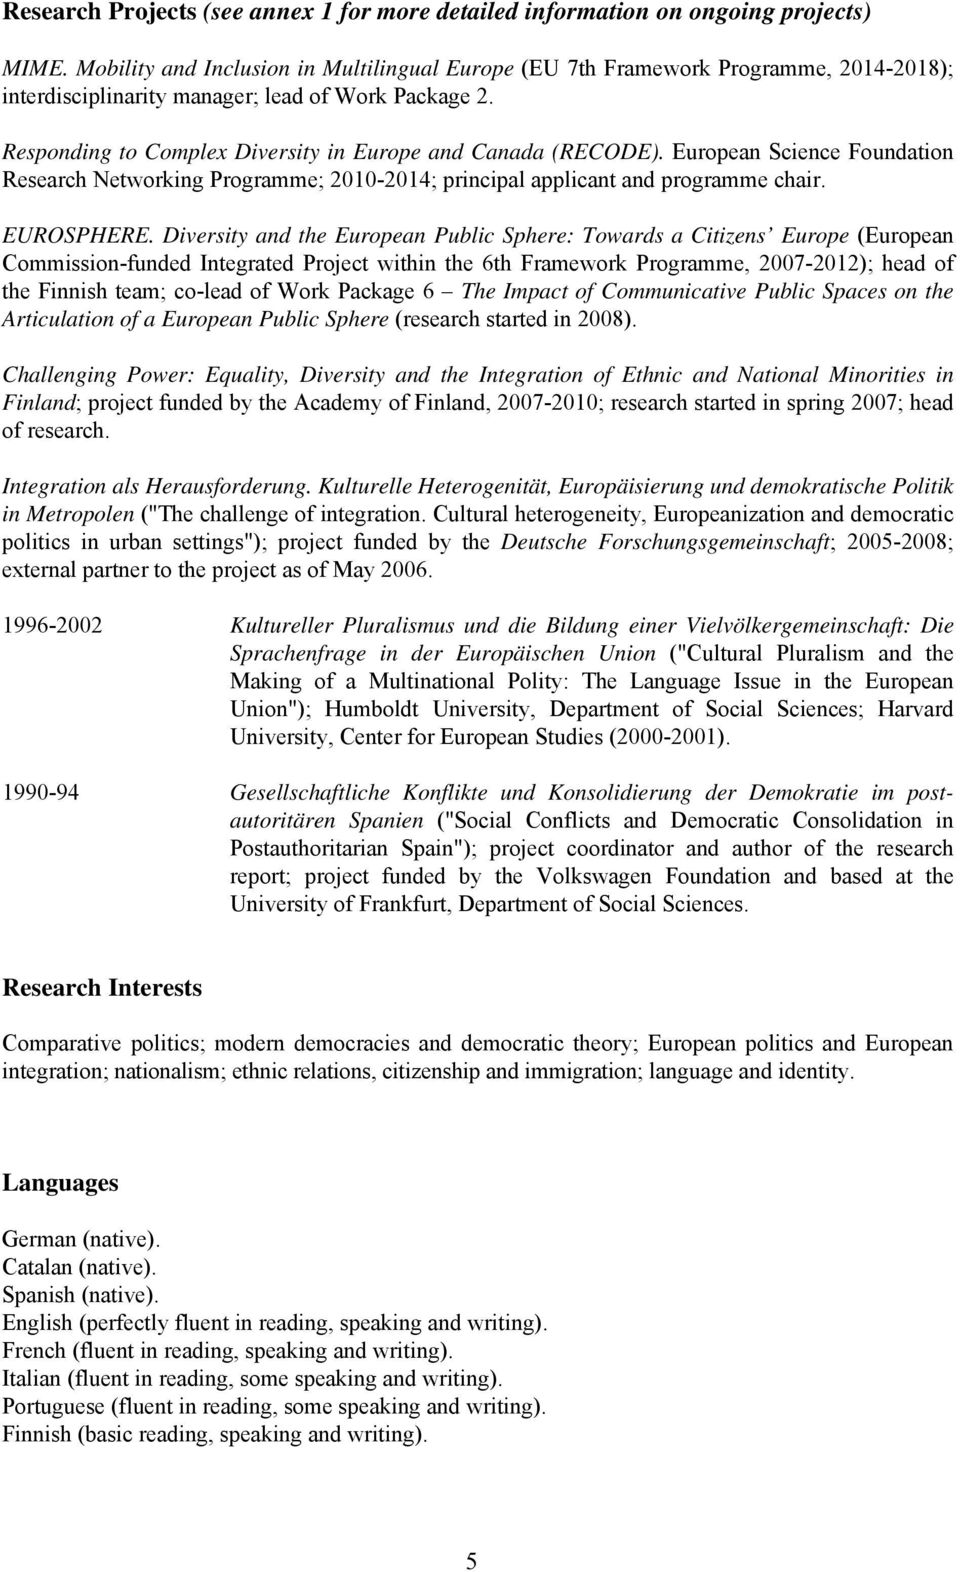 Responding to Complex Diversity in Europe and Canada (RECODE). European Science Foundation Research Networking Programme; 2010-2014; principal applicant and programme chair. EUROSPHERE.